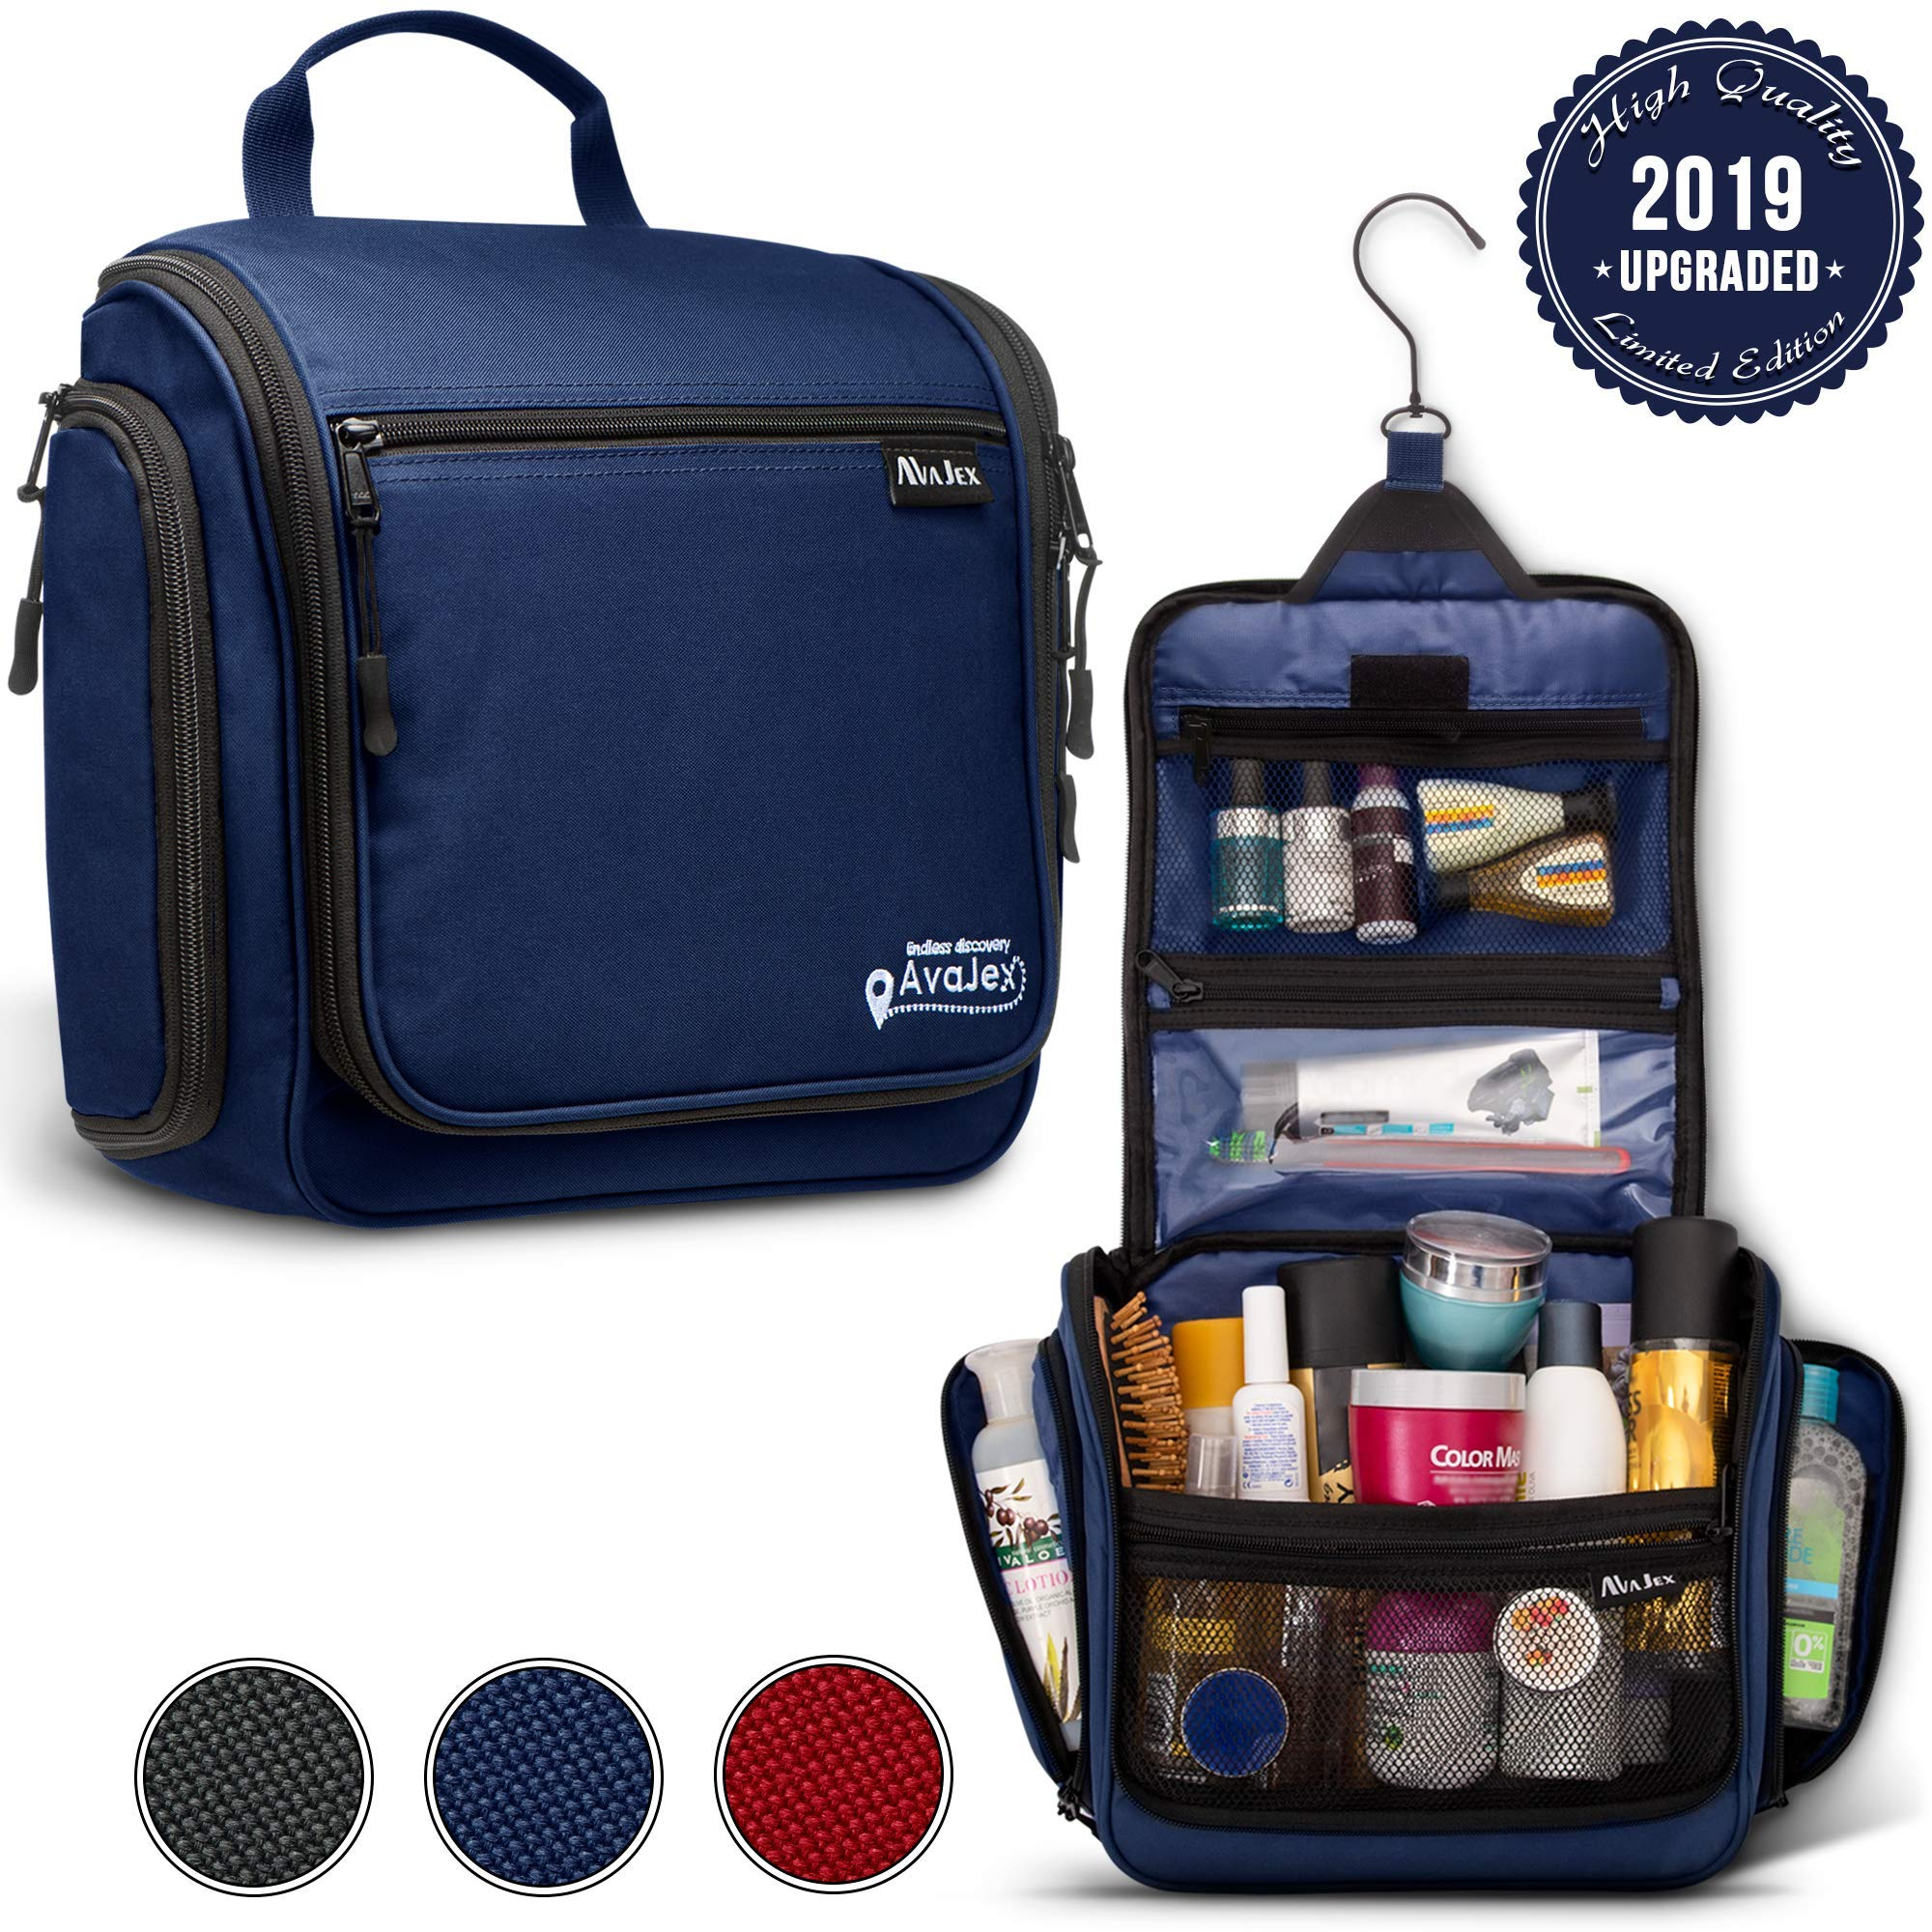 Premium Hanging Travel Toiletry Bag for Men and Women - Large Toiletry Organizer - Waterproof Hygiene Bag with Metal Swivel Hook, Durable Zippers and Large Capacity for Toiletries, Makeup, Cosmetics by AvaJex